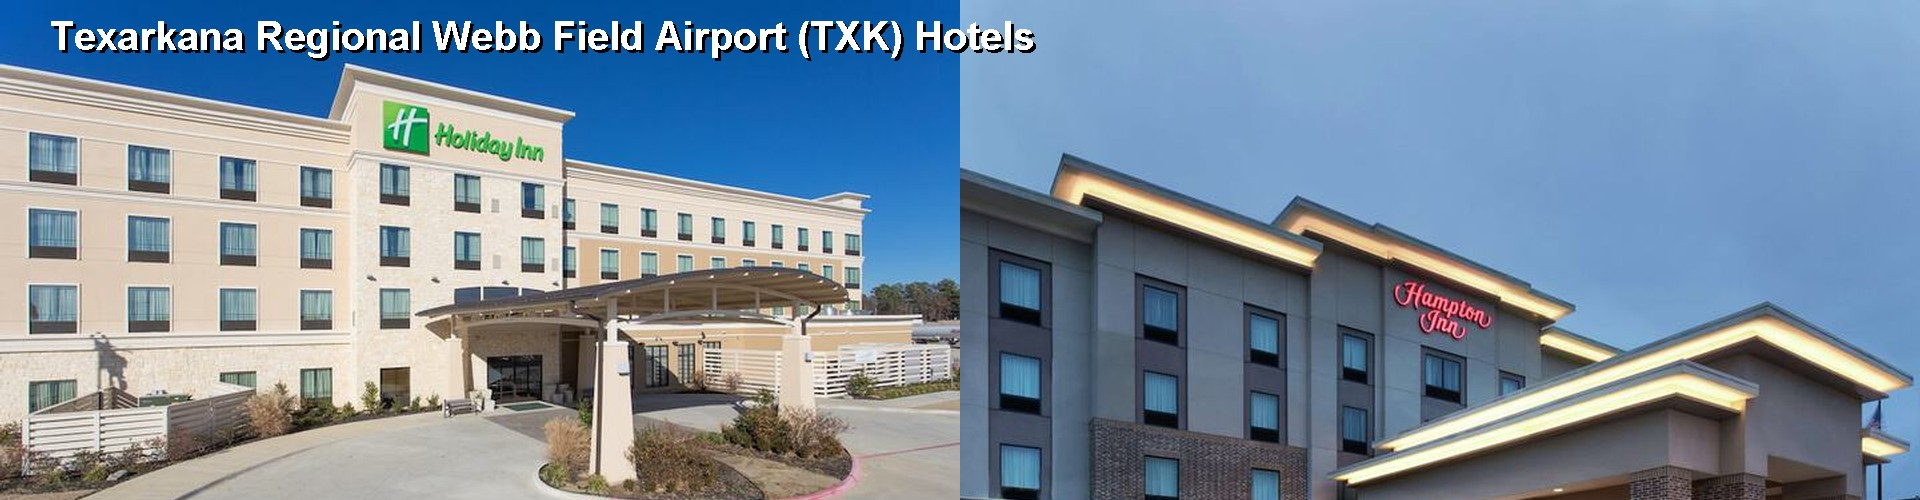 5 Best Hotels near Texarkana Regional Webb Field Airport (TXK)